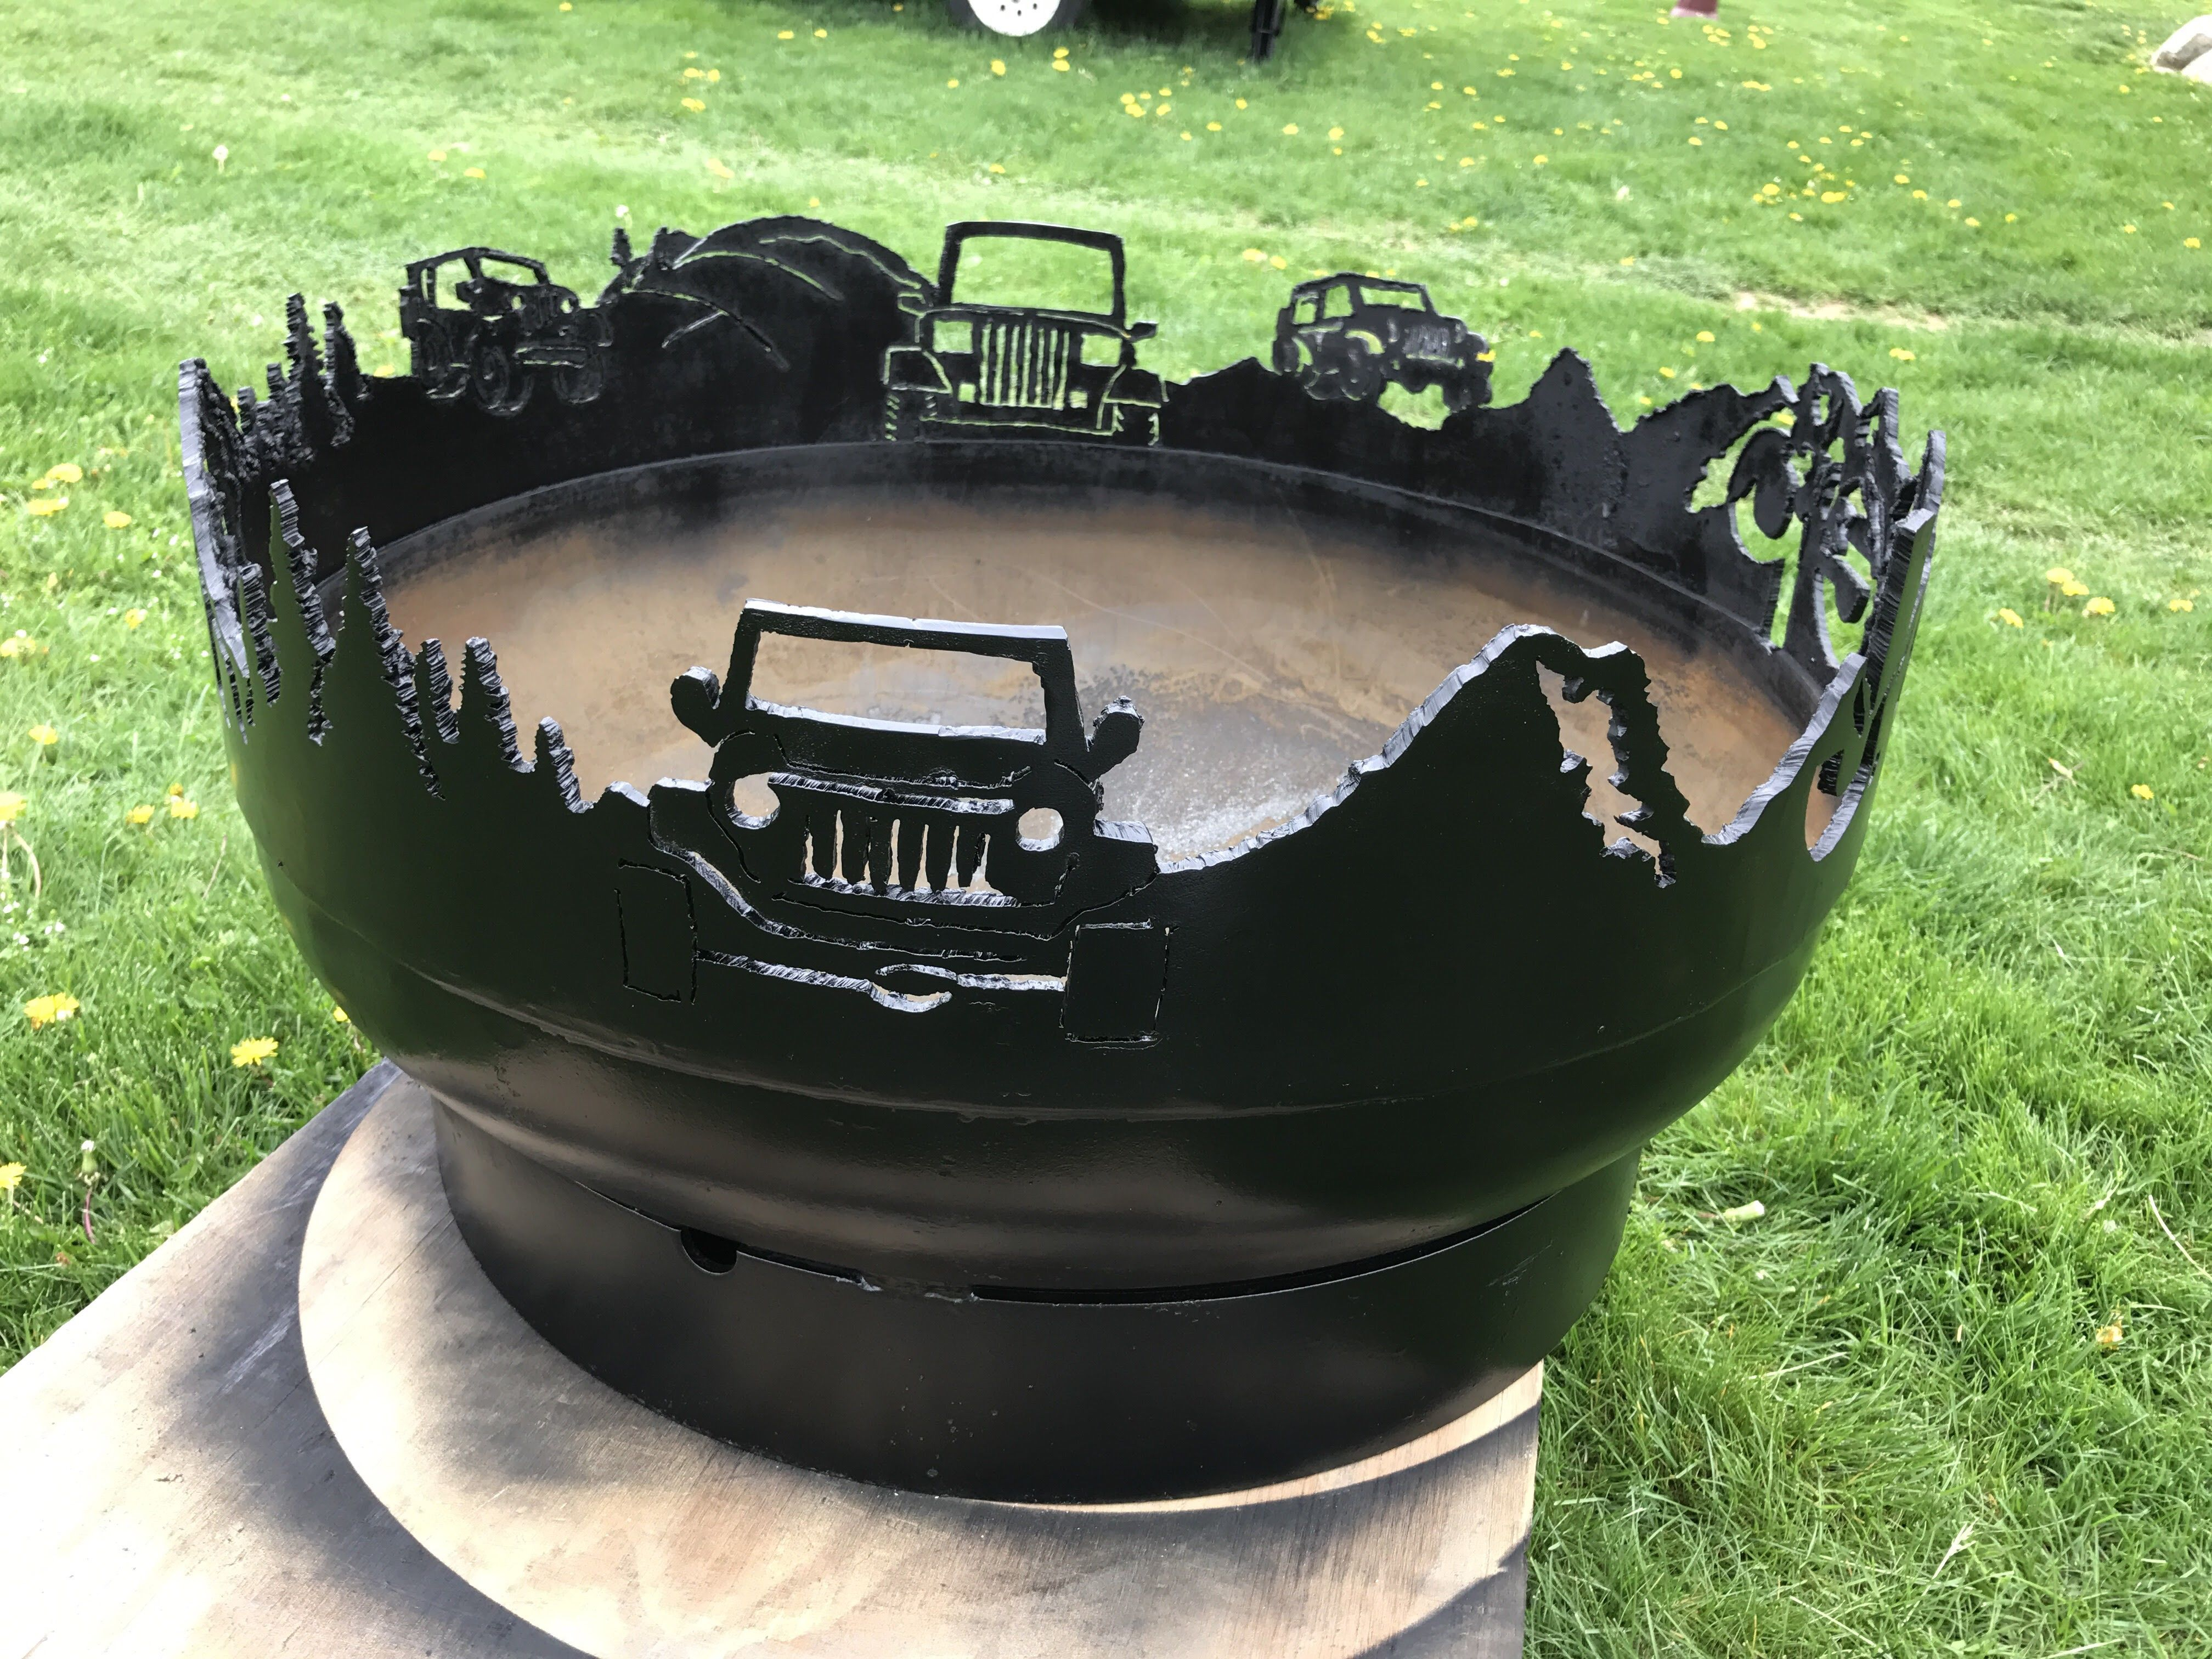 Jeep Fire Pit 550 30 Inch Across 1 4 Steel Fire Pit Gallery Cool Fire Pits Outdoor Fire Pit